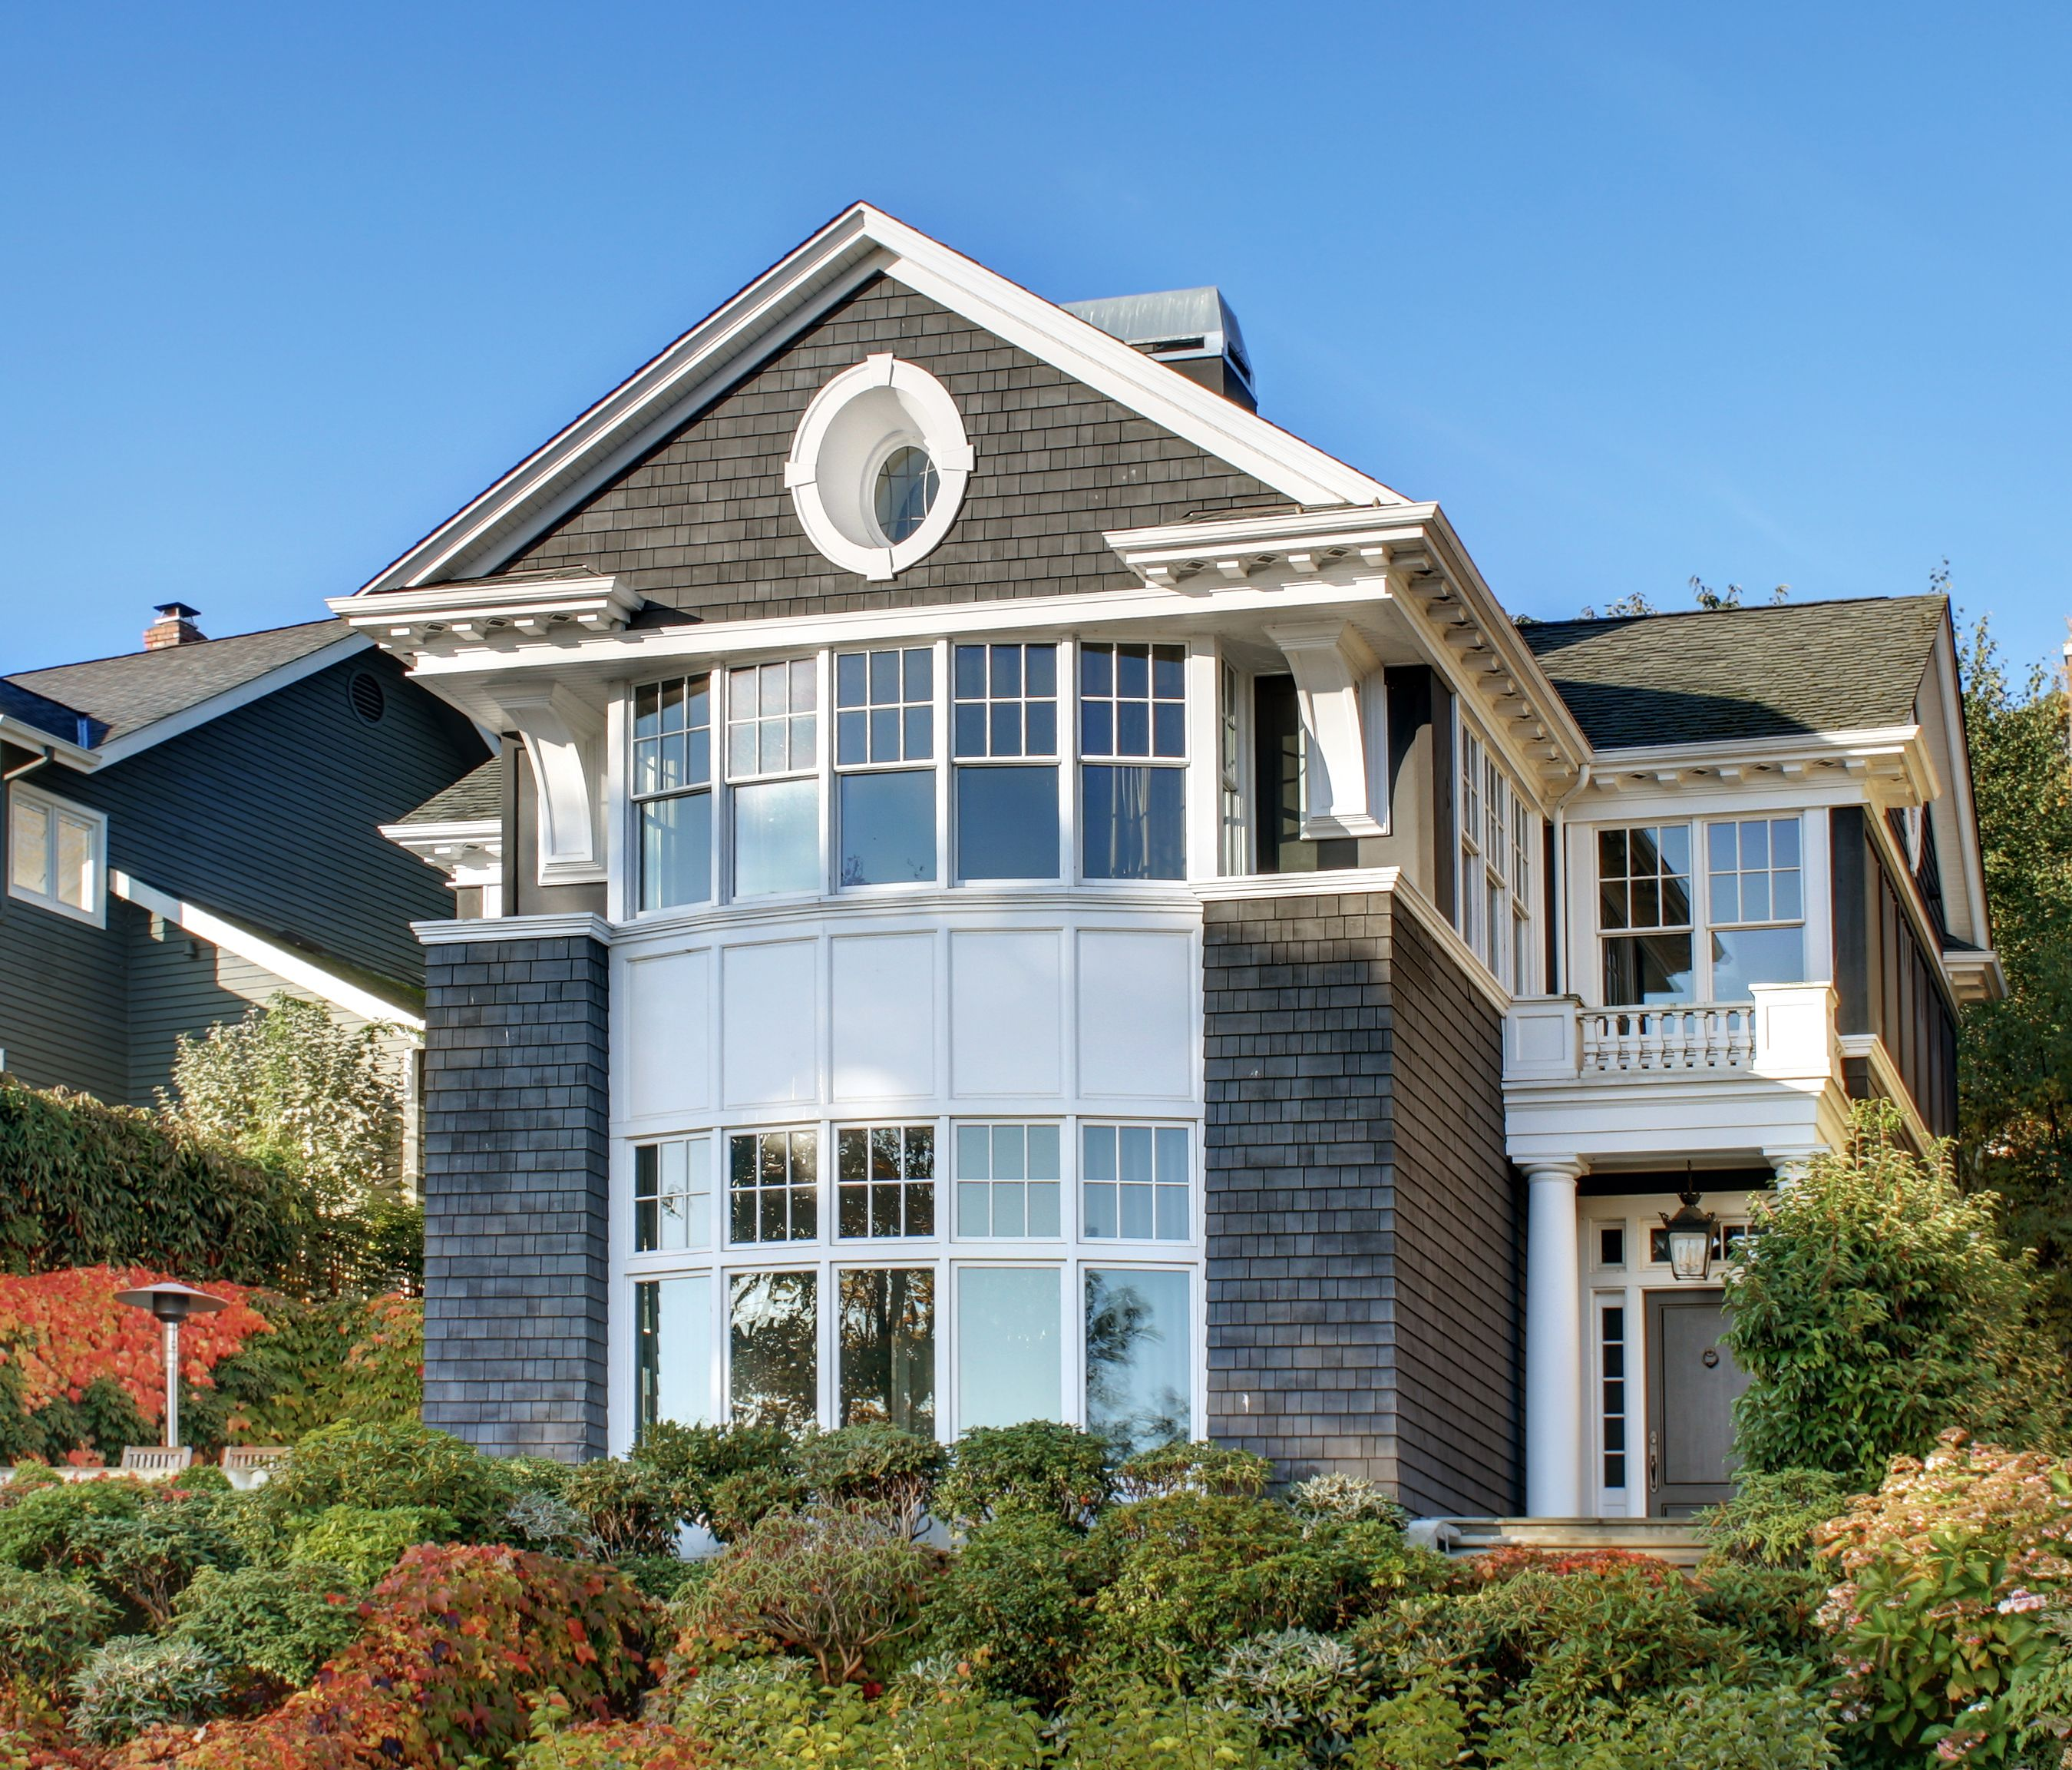 Traditional Georgian Details Guarantee Timeless Design For This Lake  Washington Home. Exterior Features Include Sweeping